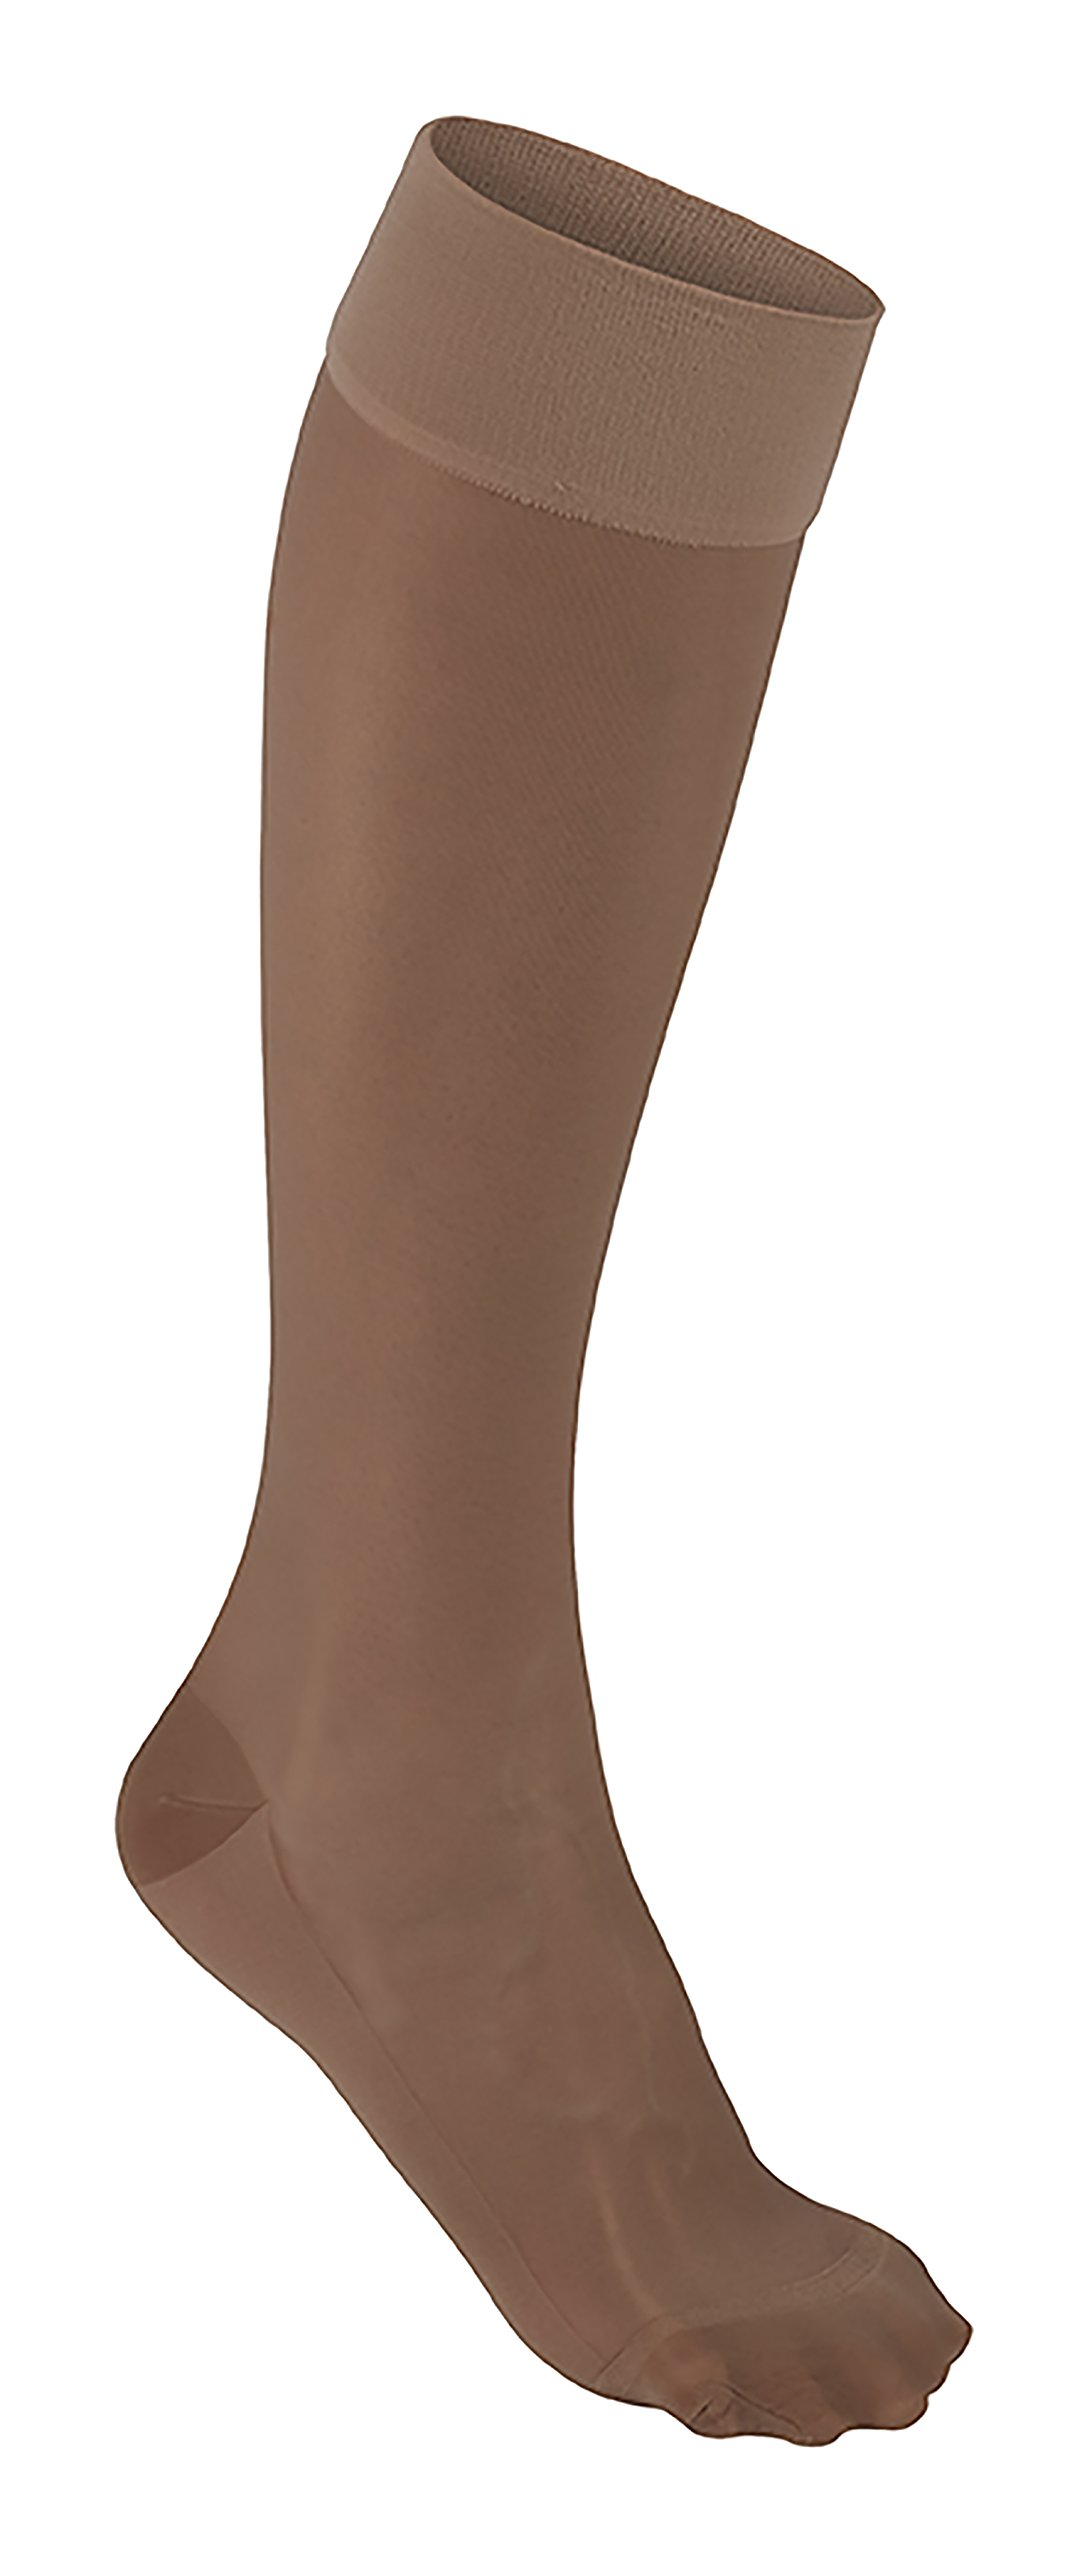 Futuro Revitalizing Ultra Sheer Knee Highs for Women, Large, Nude, Moderate Compression